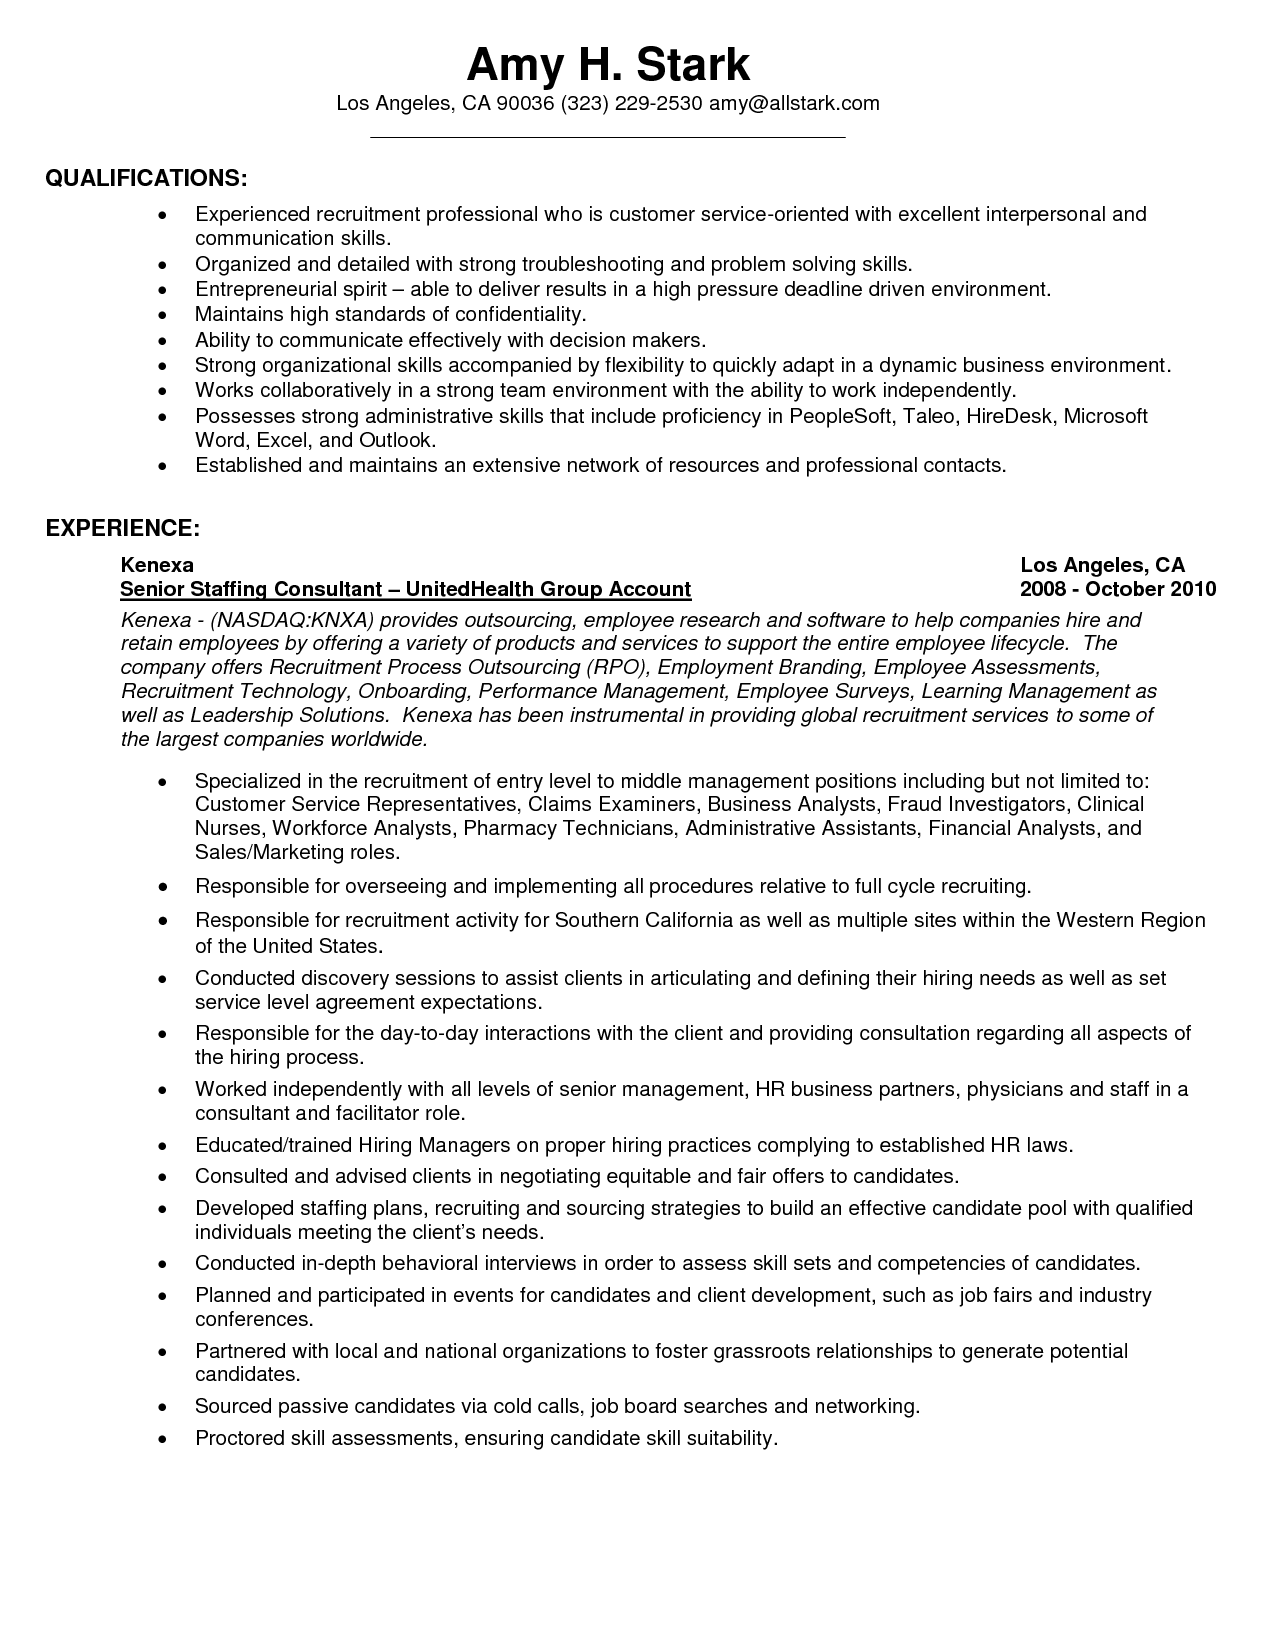 Resume Templates Customer Service On KFC Job Application template